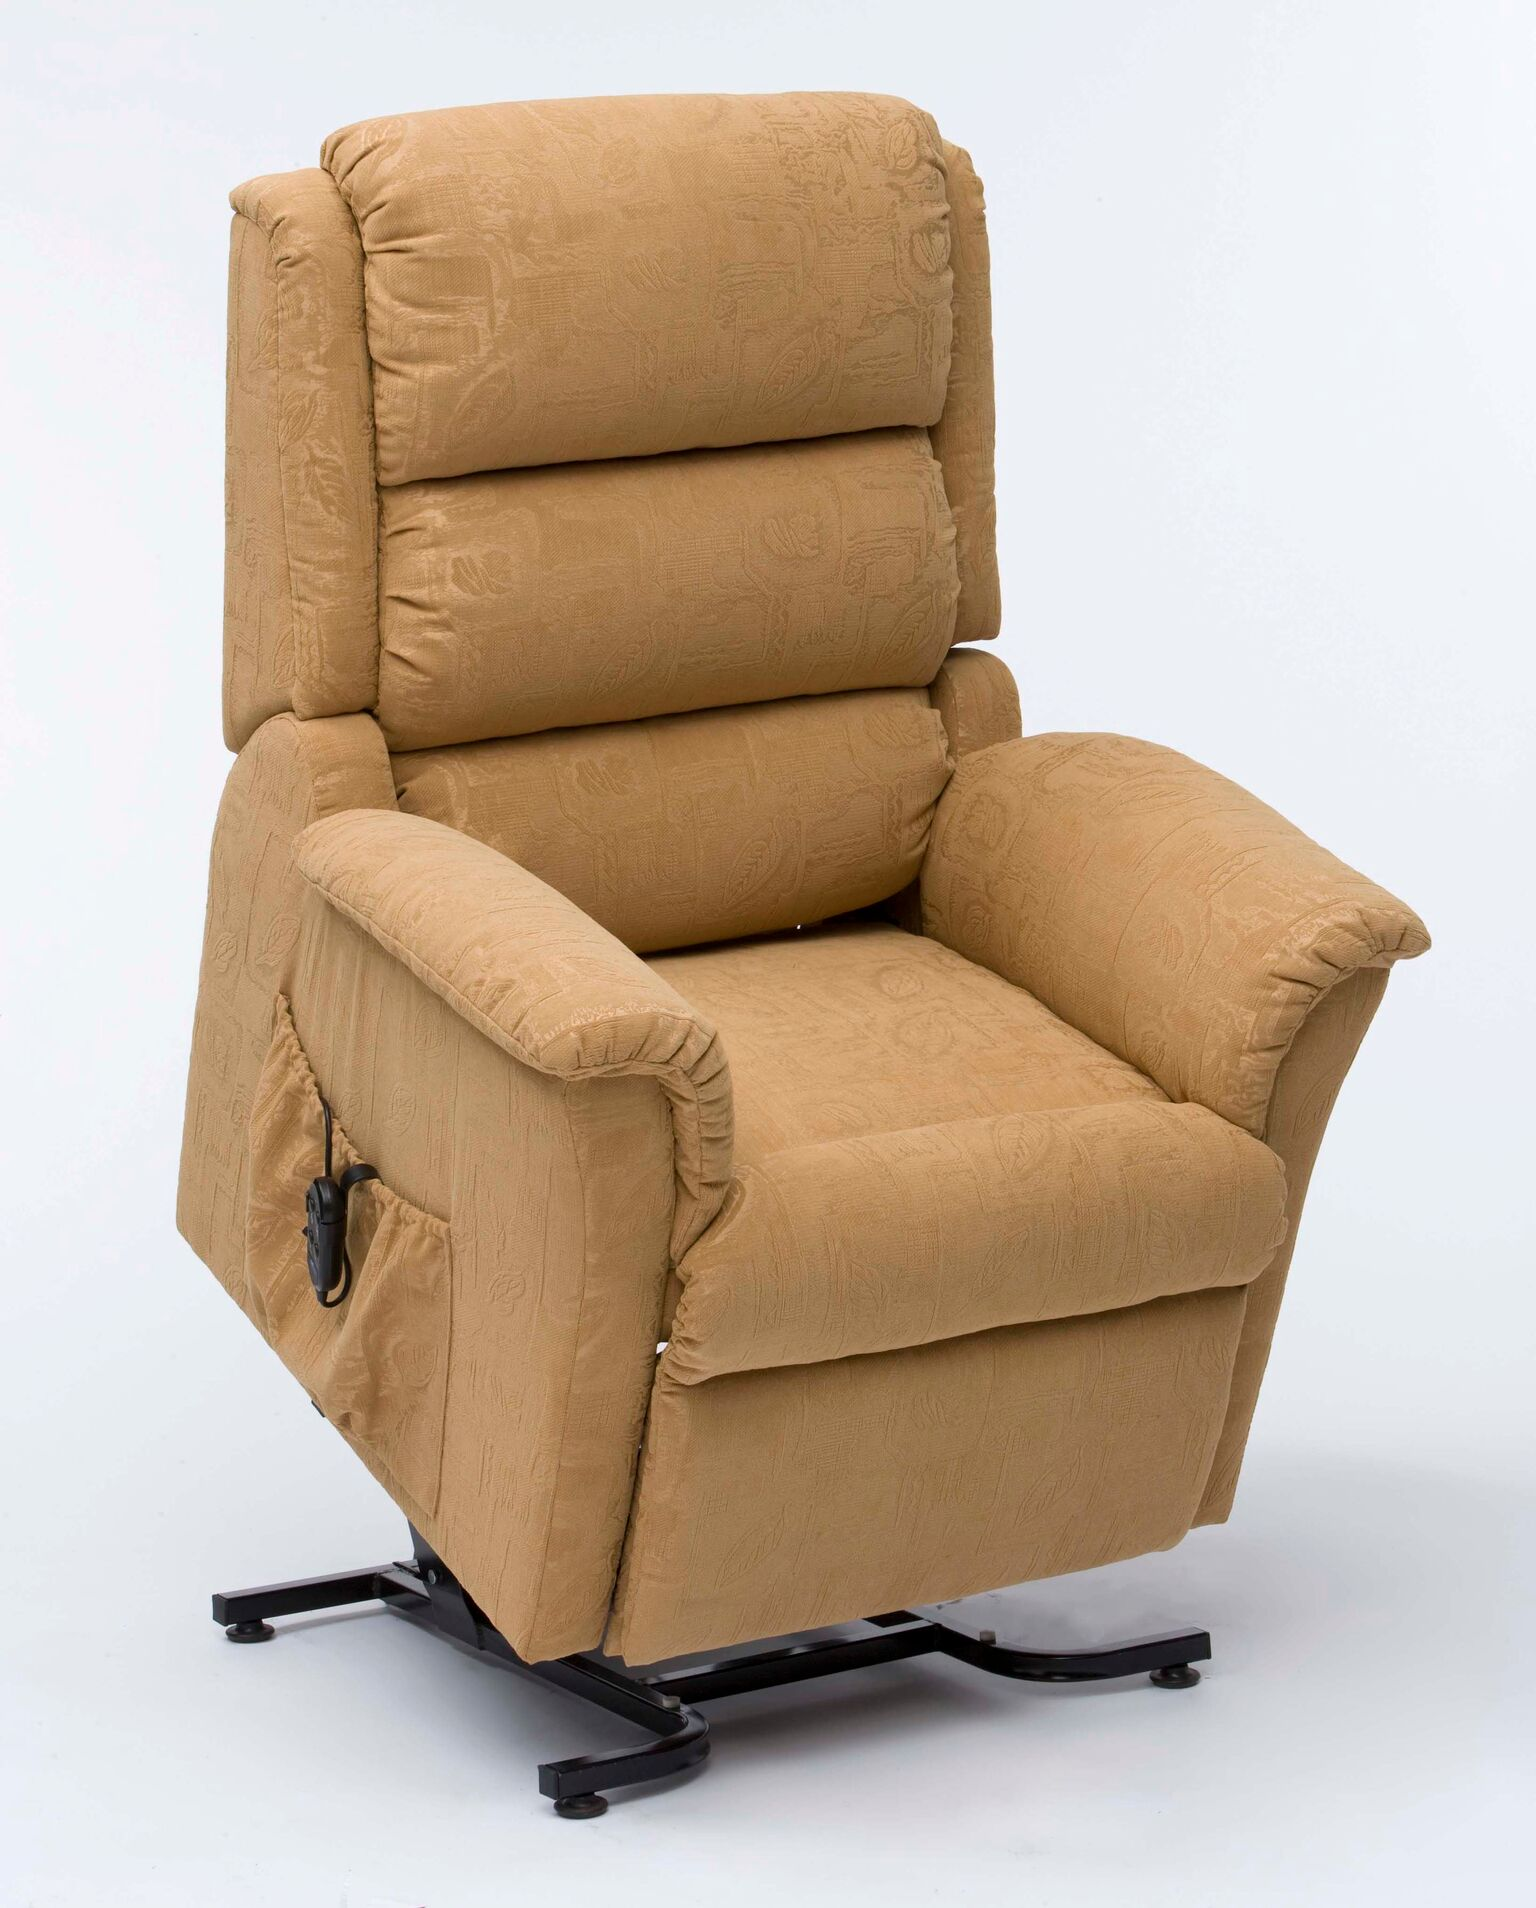 Surprising Nevada Dual Motor Riser Recliner Ocoug Best Dining Table And Chair Ideas Images Ocougorg